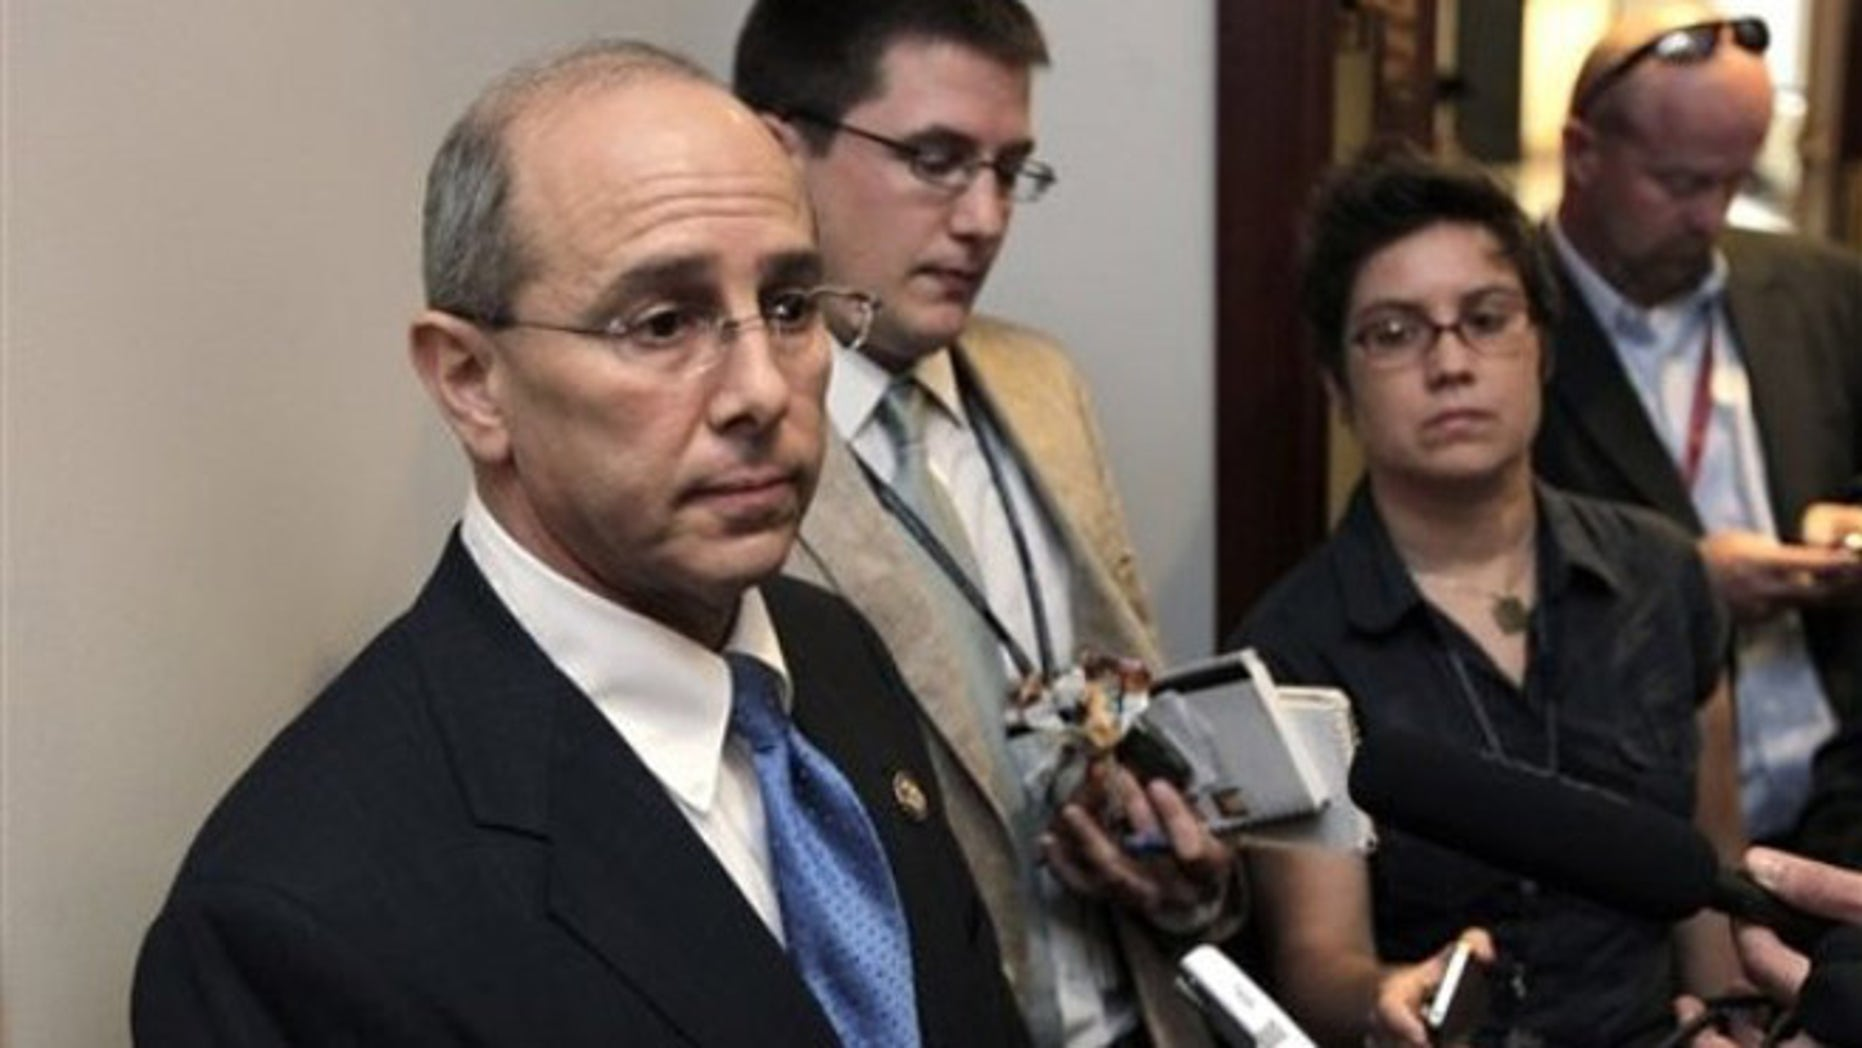 FILE: Rep. Charles Boustany, R-La., speaks with reporters after a closed-door meeting at the Capitol.